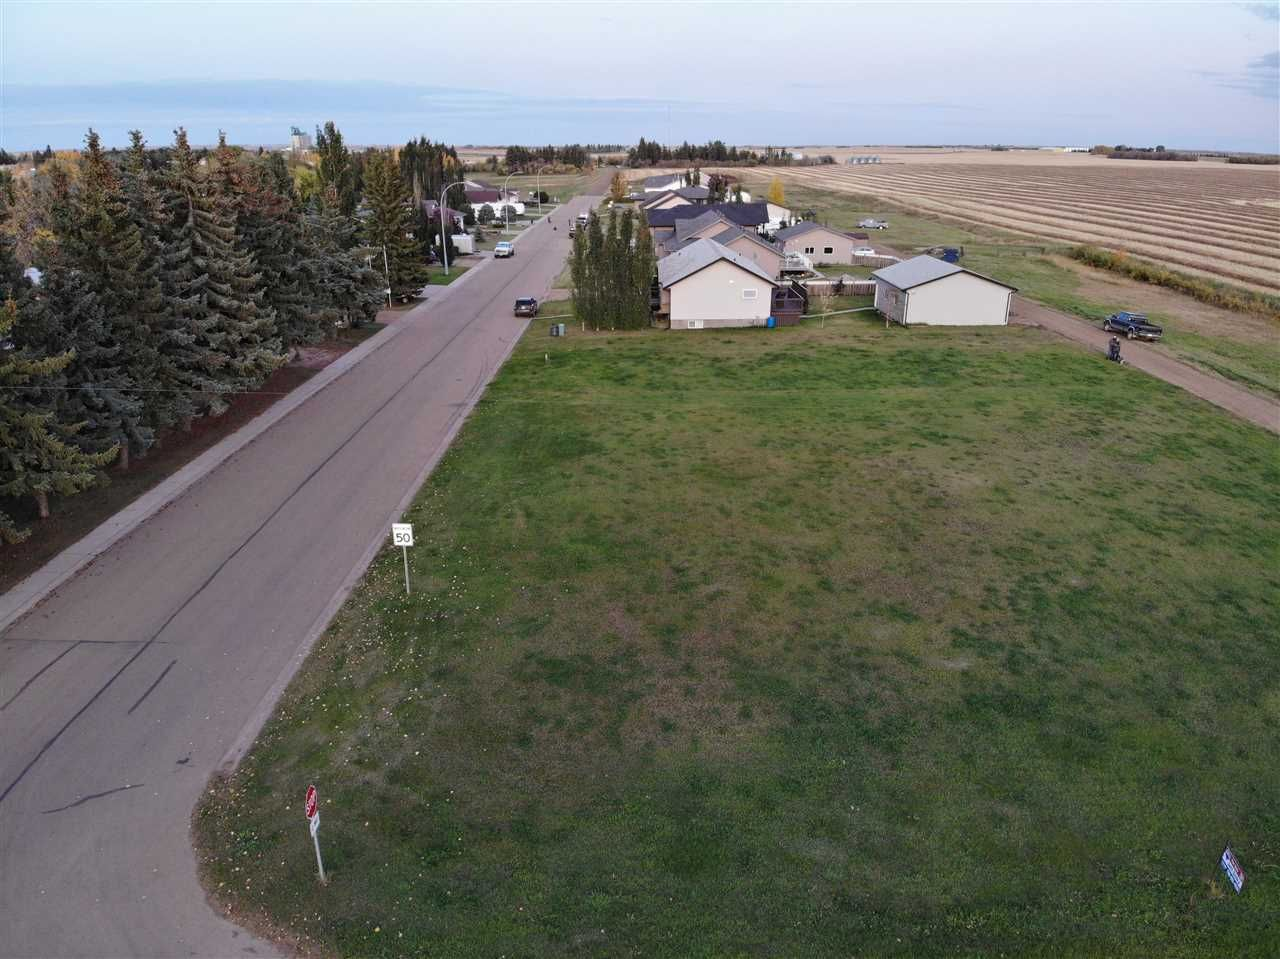 Main Photo: 5611 45 Avenue: Killam Vacant Lot for sale : MLS®# E4207344